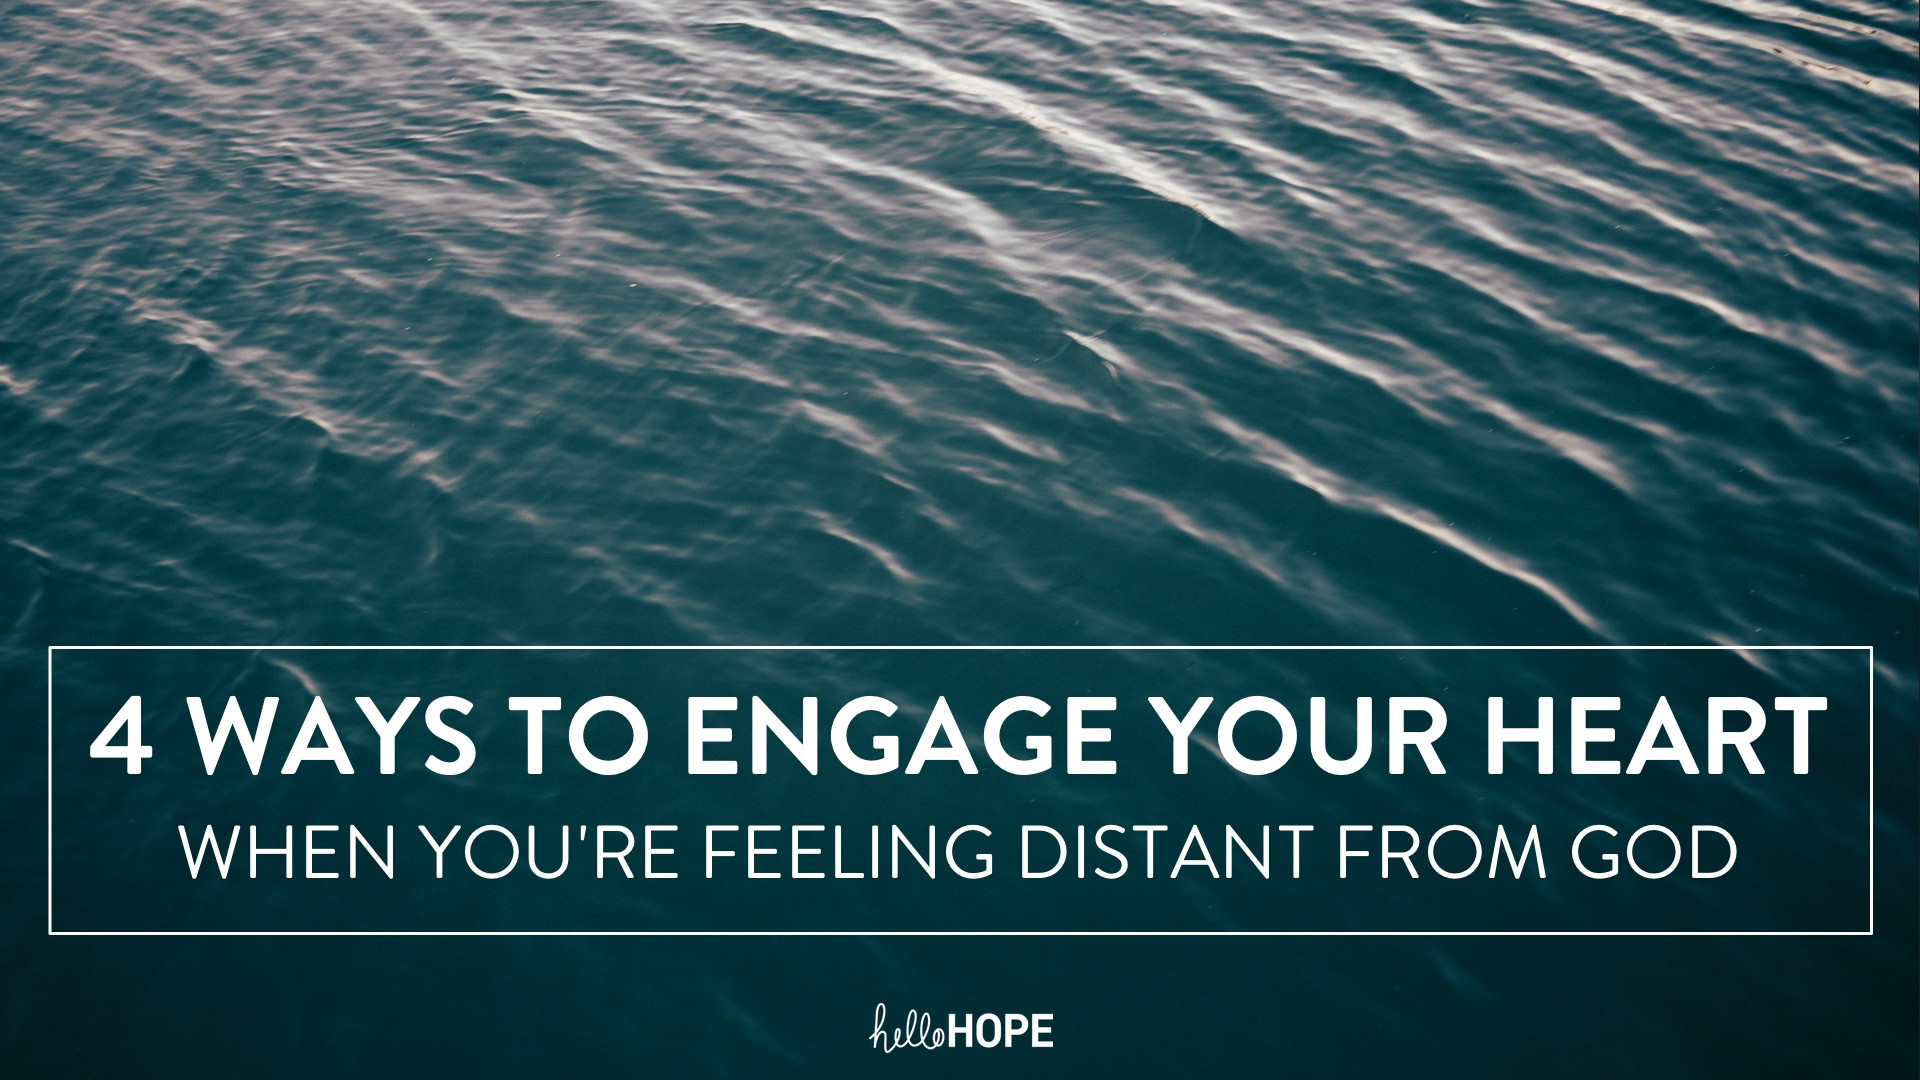 1804_4-ways-to-engage-yours-heart-when-youre-feeling-distant-from-god_sm.jpg